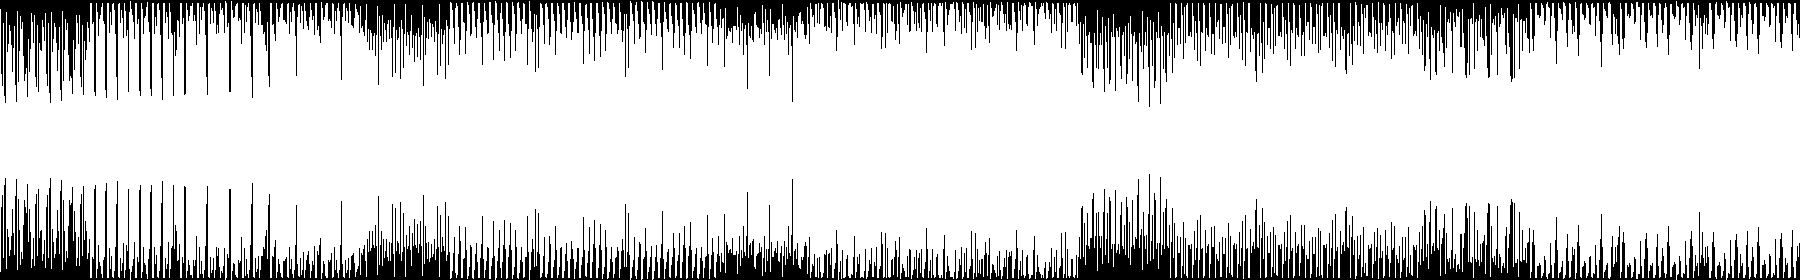 Minimalism Vol.2 audio waveform